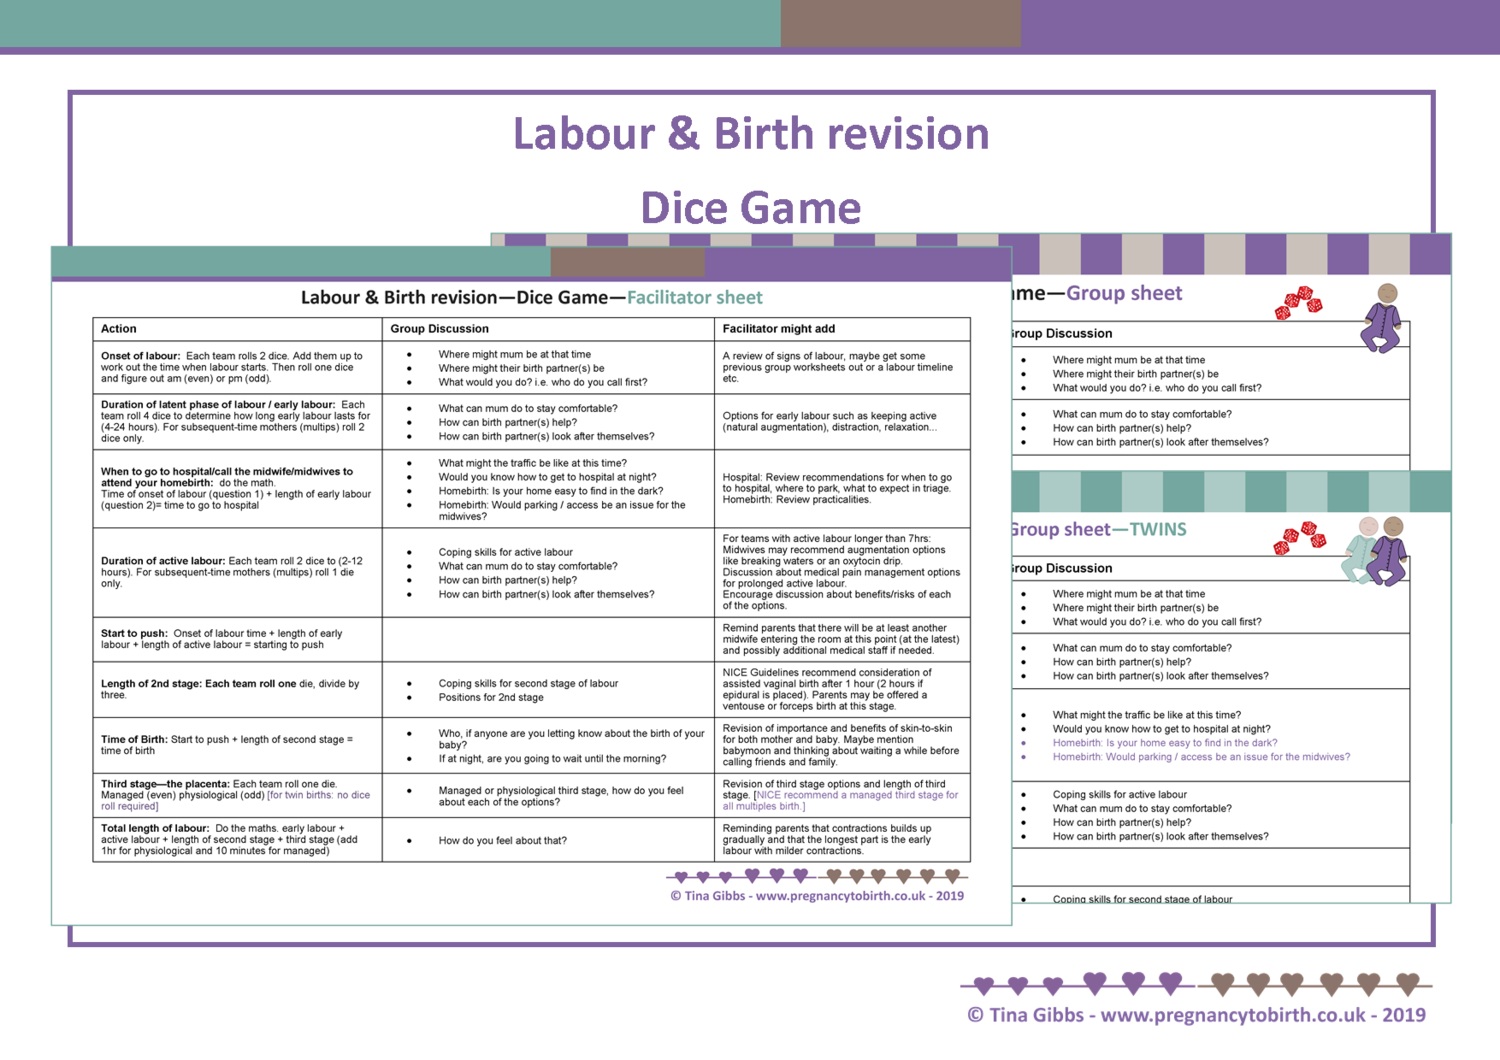 Labour & Birth Revision Dice Game